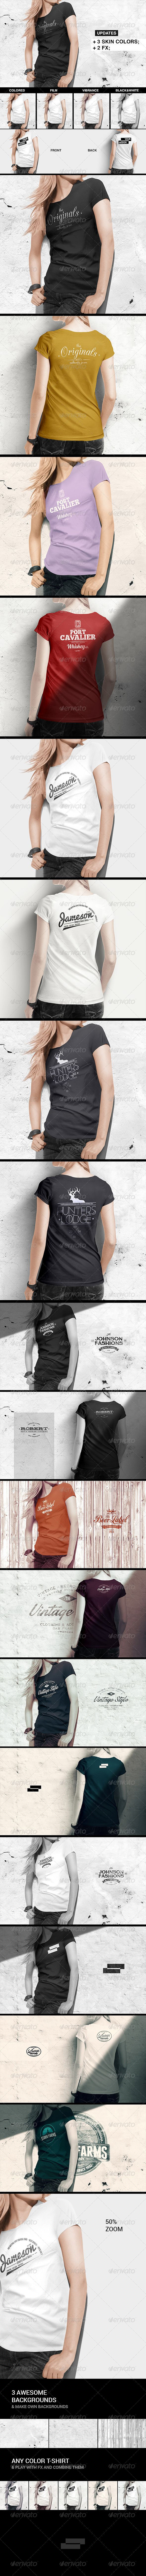 Download Women T Shirt Mock Up Clothing Mockup T Shirts For Women T Shirt Design Template